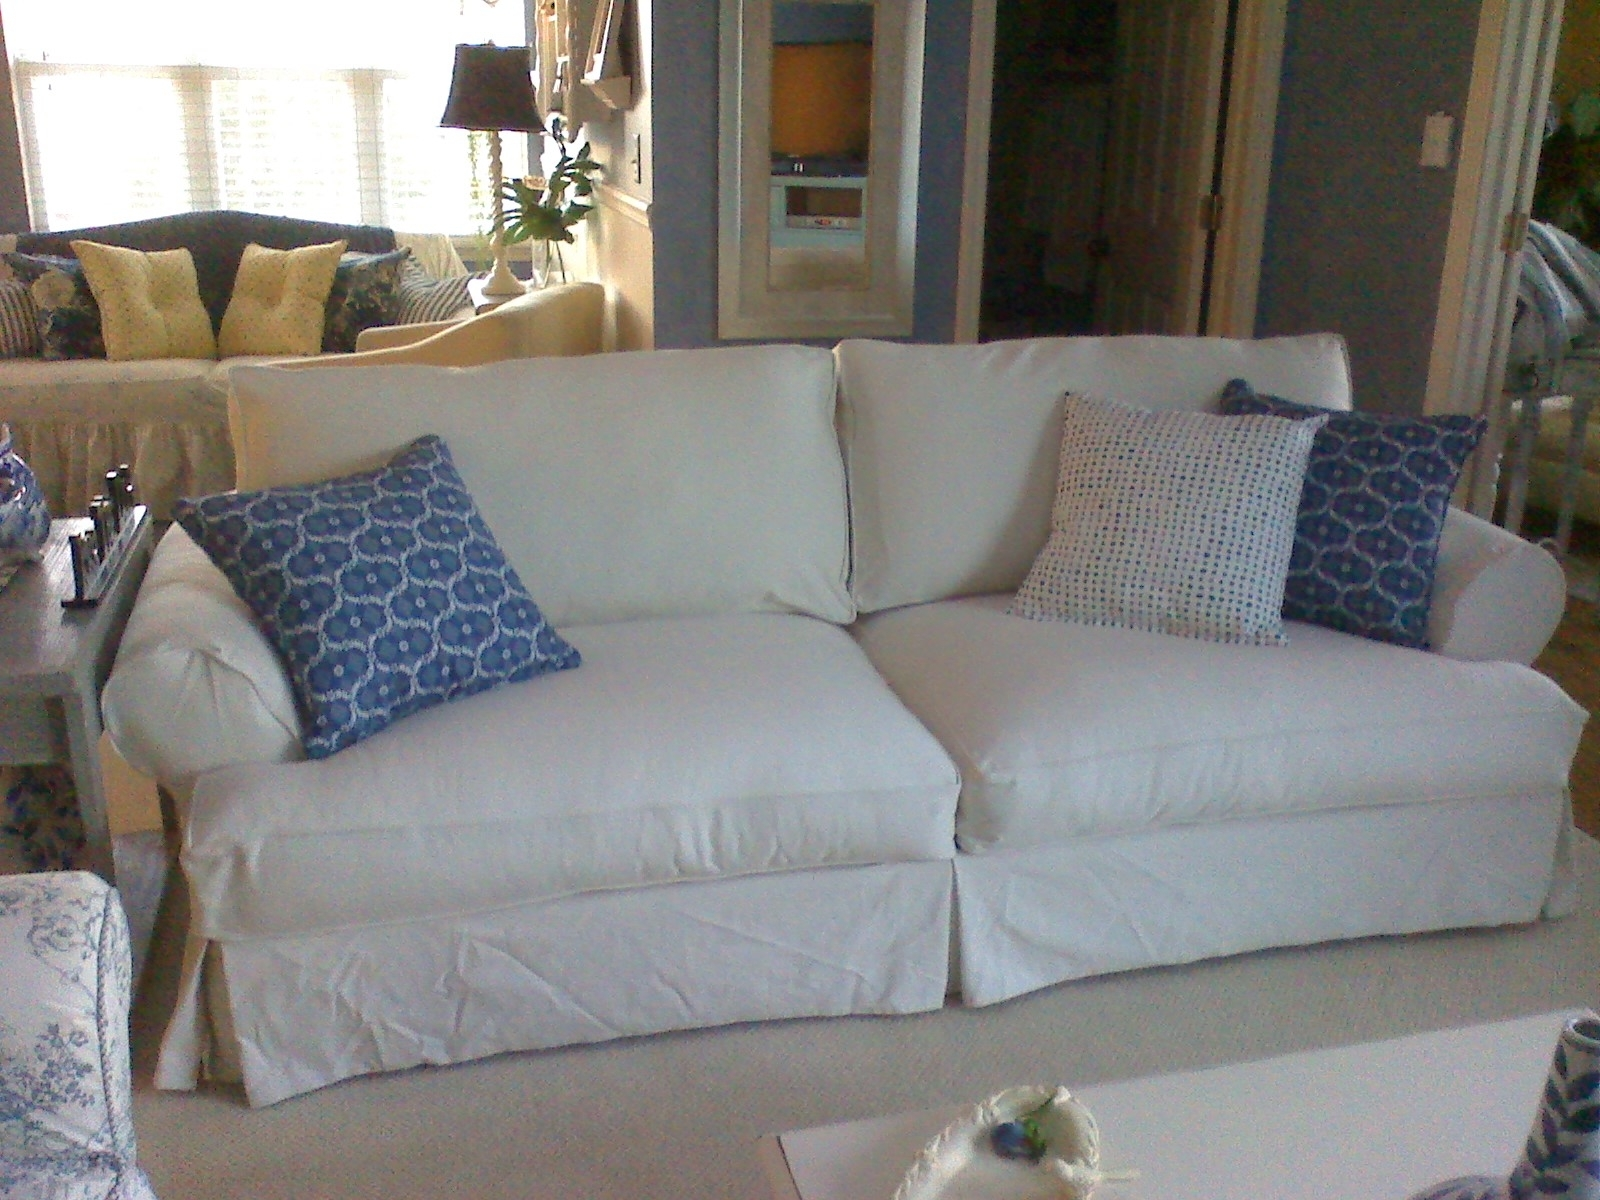 Fashionable Sofas With Washable Covers With Slipcovers For Sofas Be Equipped L Couch Covers Be Equipped (View 13 of 20)